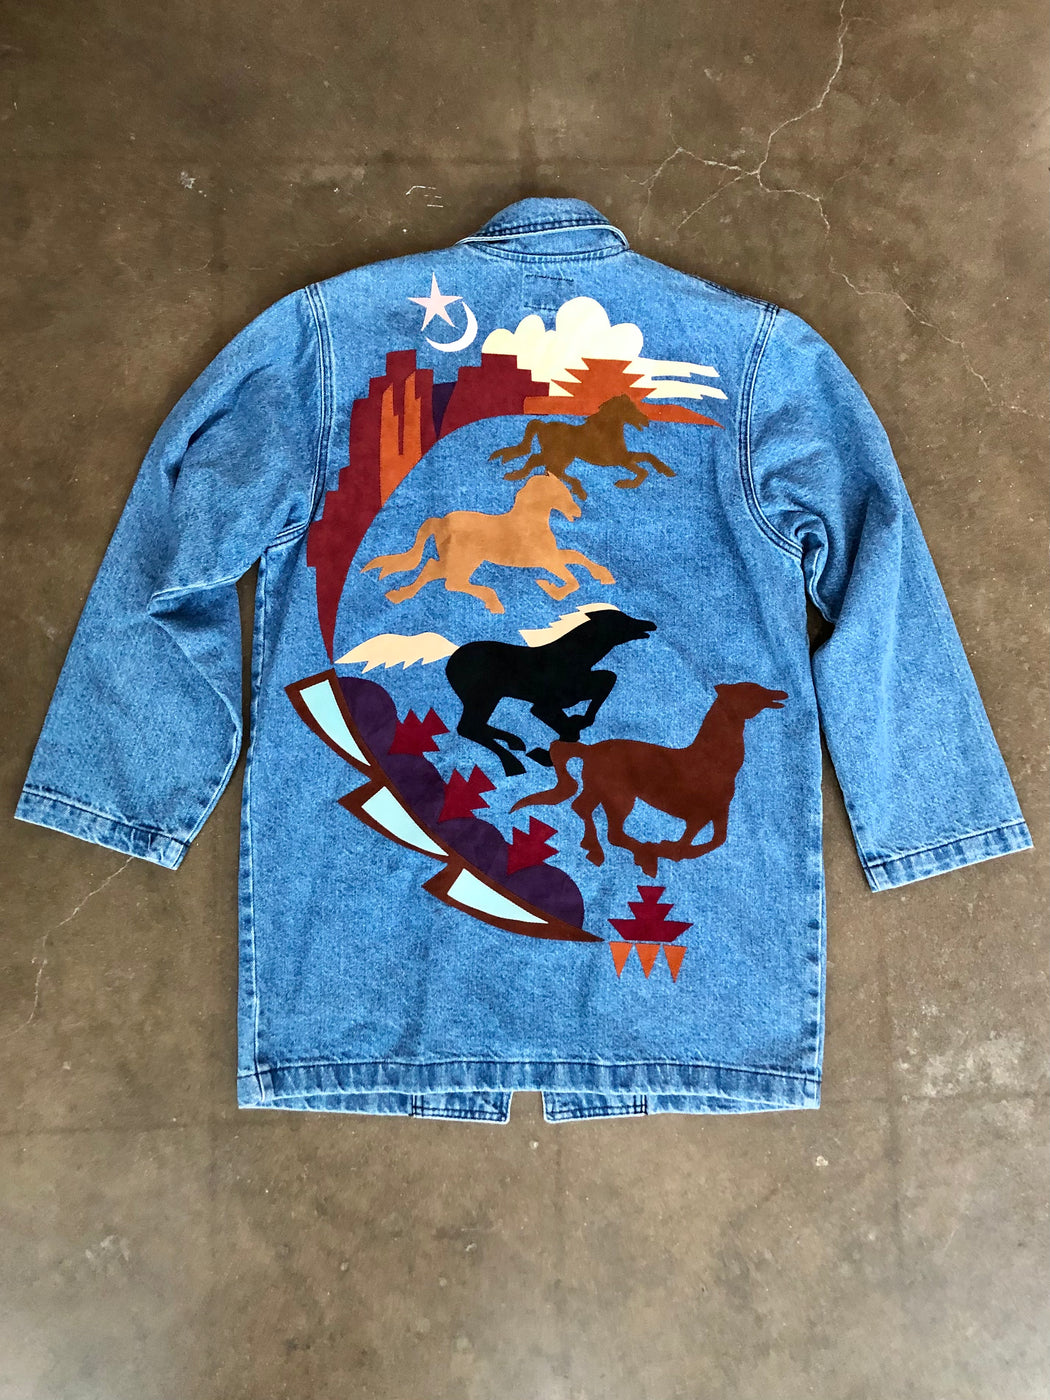 Southwestern Denim Jacket With Leather Patches